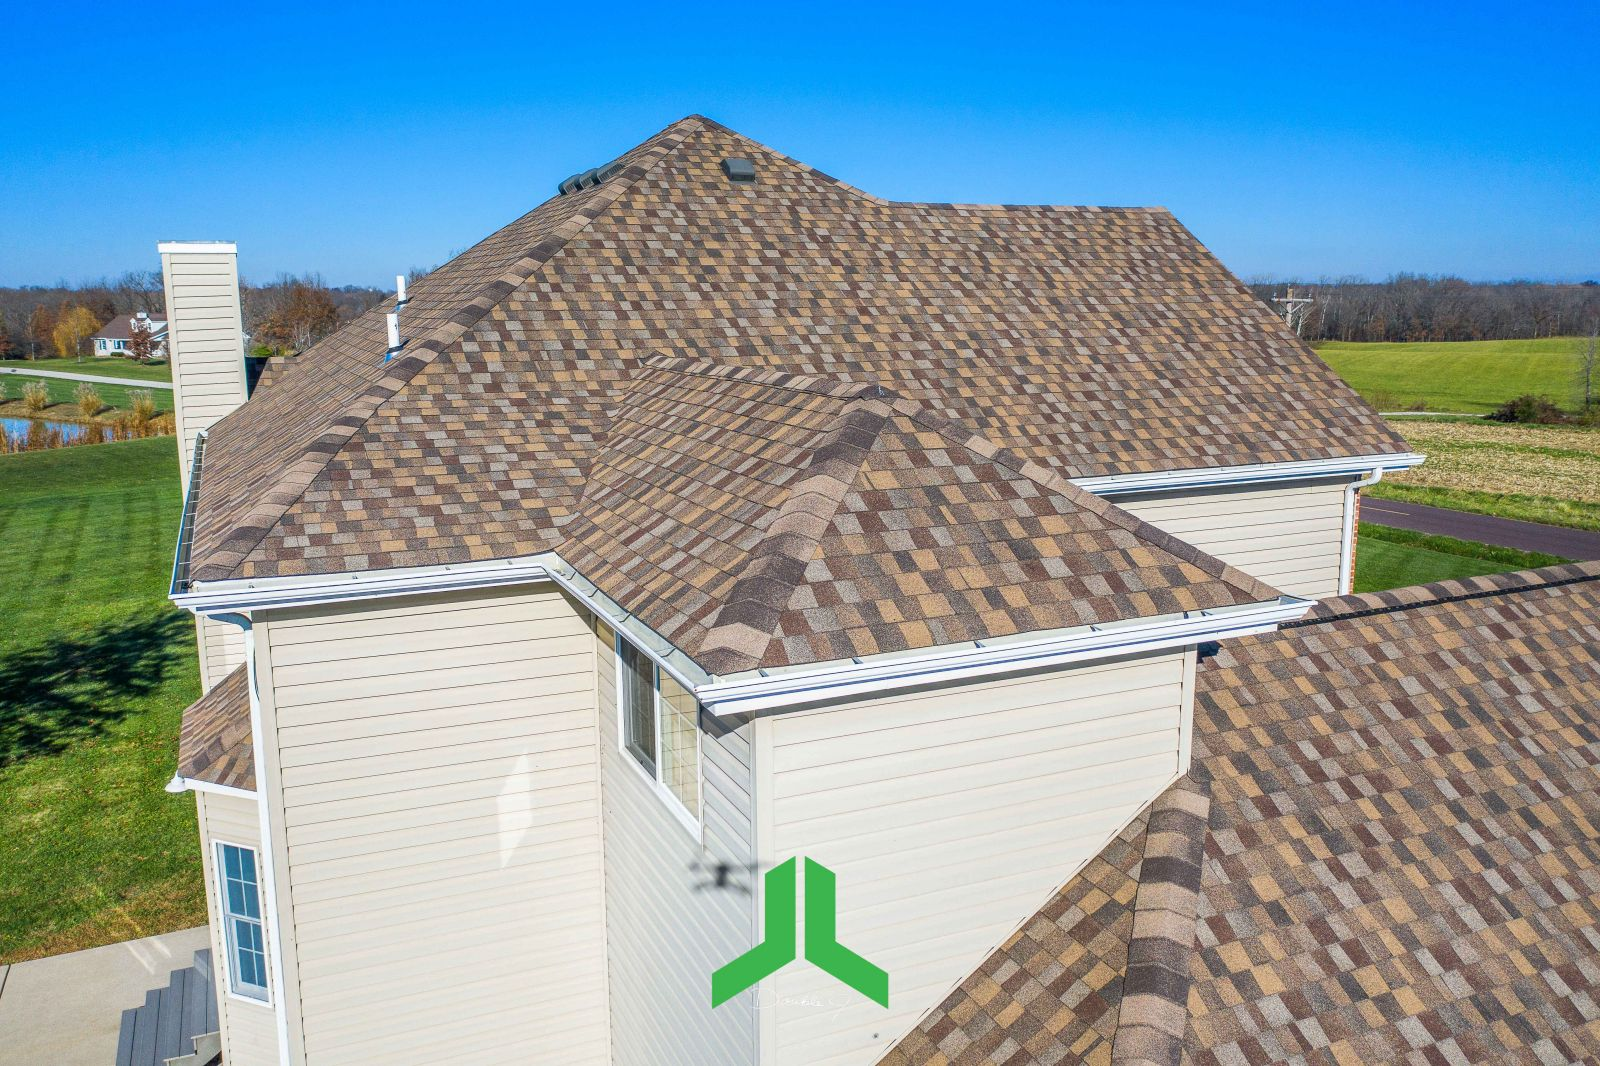 Double J Roofing and Contractors Saddleranch